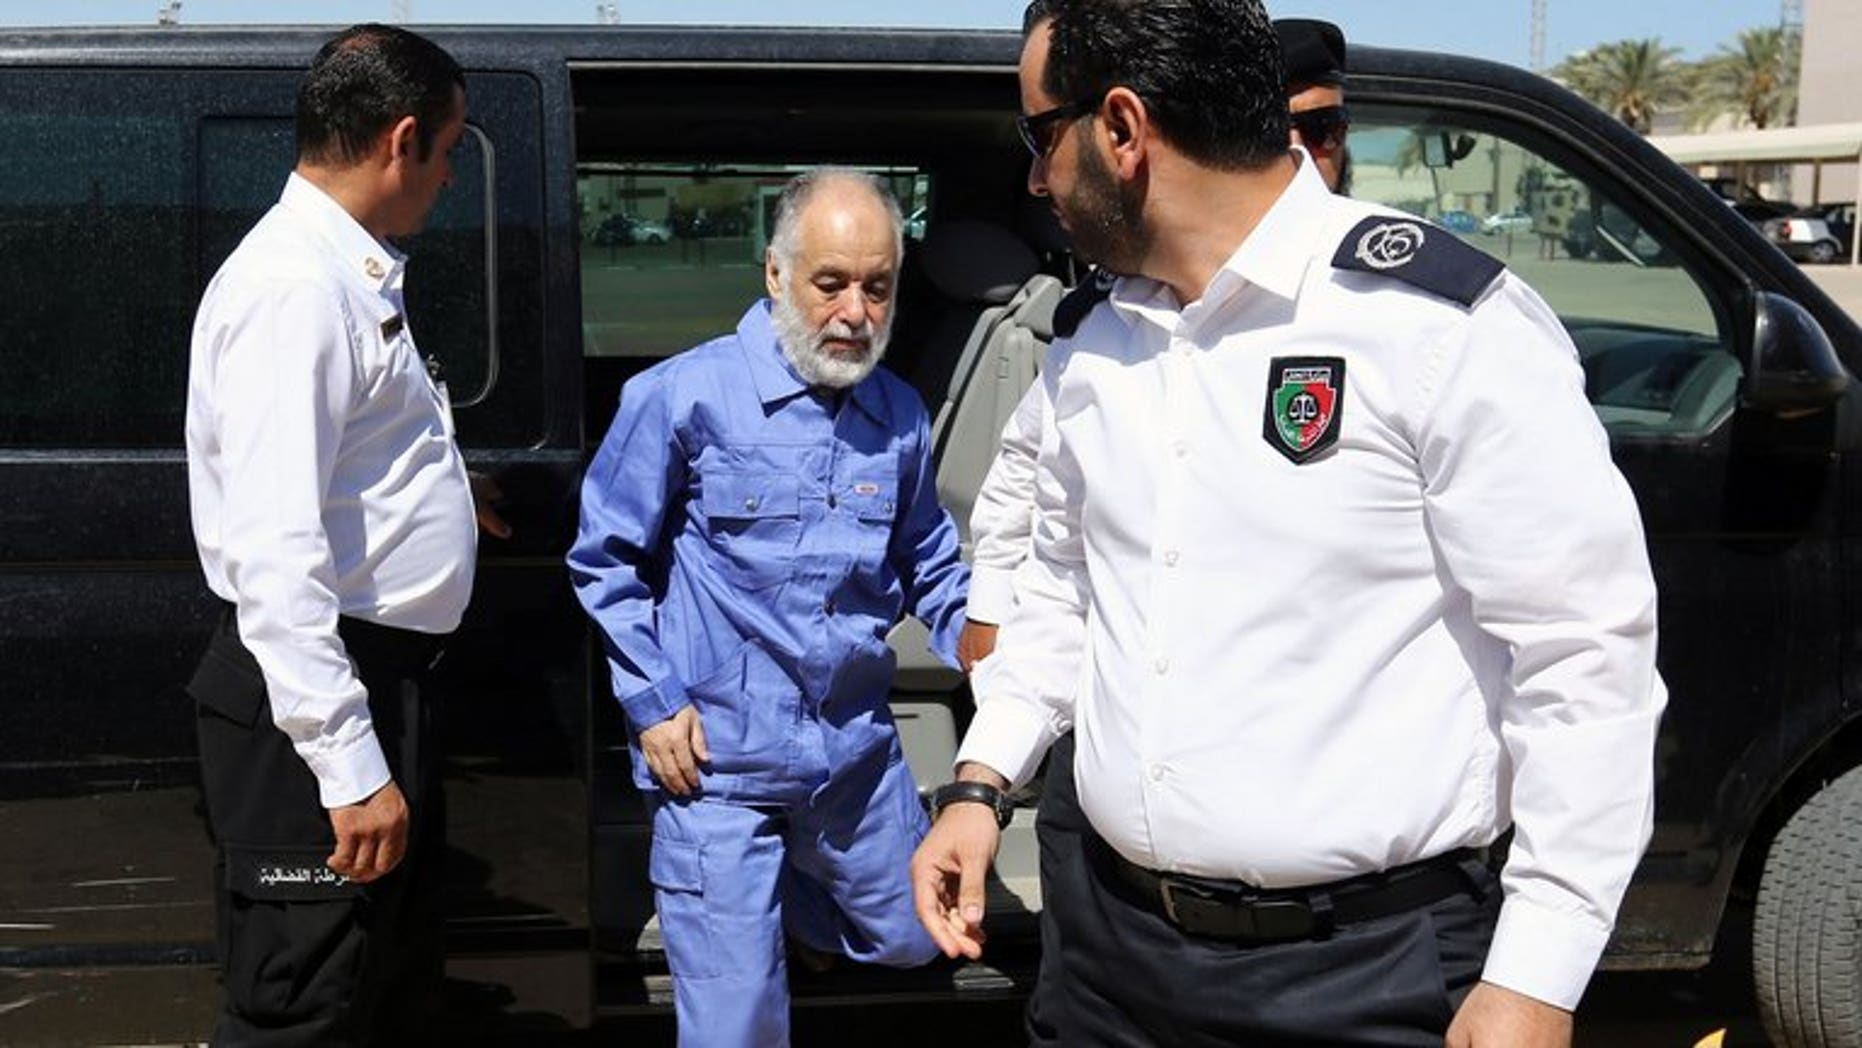 """Al-Baghdadi al-Mahmudi arrives at court for a hearing in his trial on June 12 in Tripoli. French lawyers for Moamer Kadhafi's last premier called Tuesday for his trial to be postponed after they were unable to secure visas to go and defend him, amid fears of """"revenge"""" justice in Libya."""